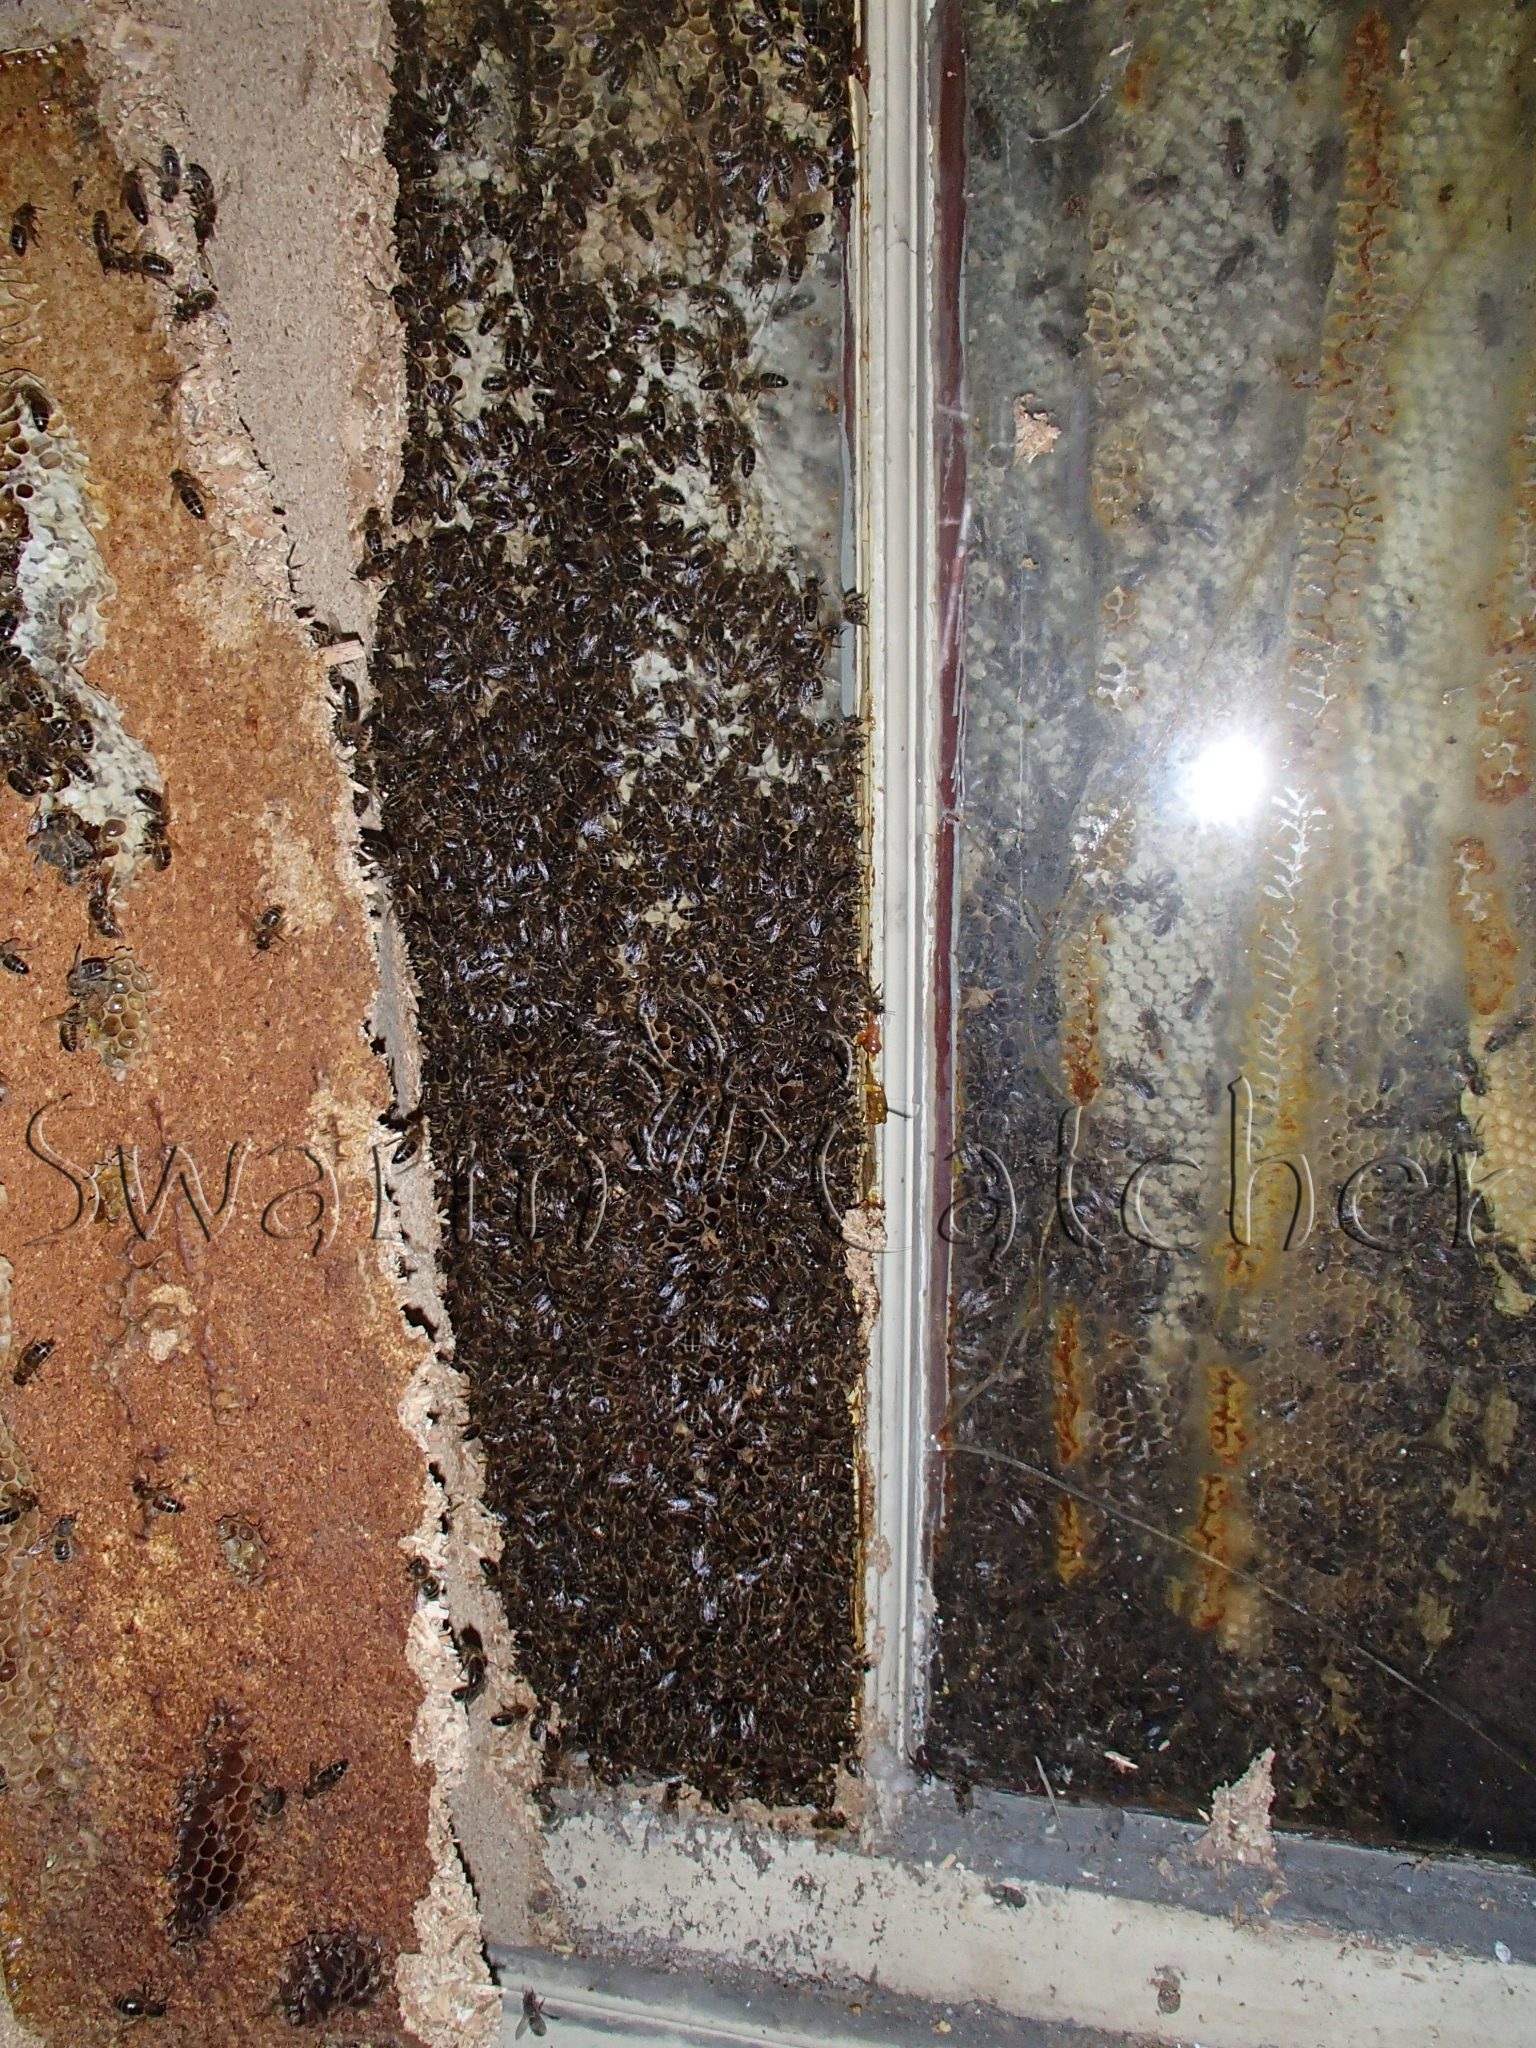 Honey bee removal from from blocked up window